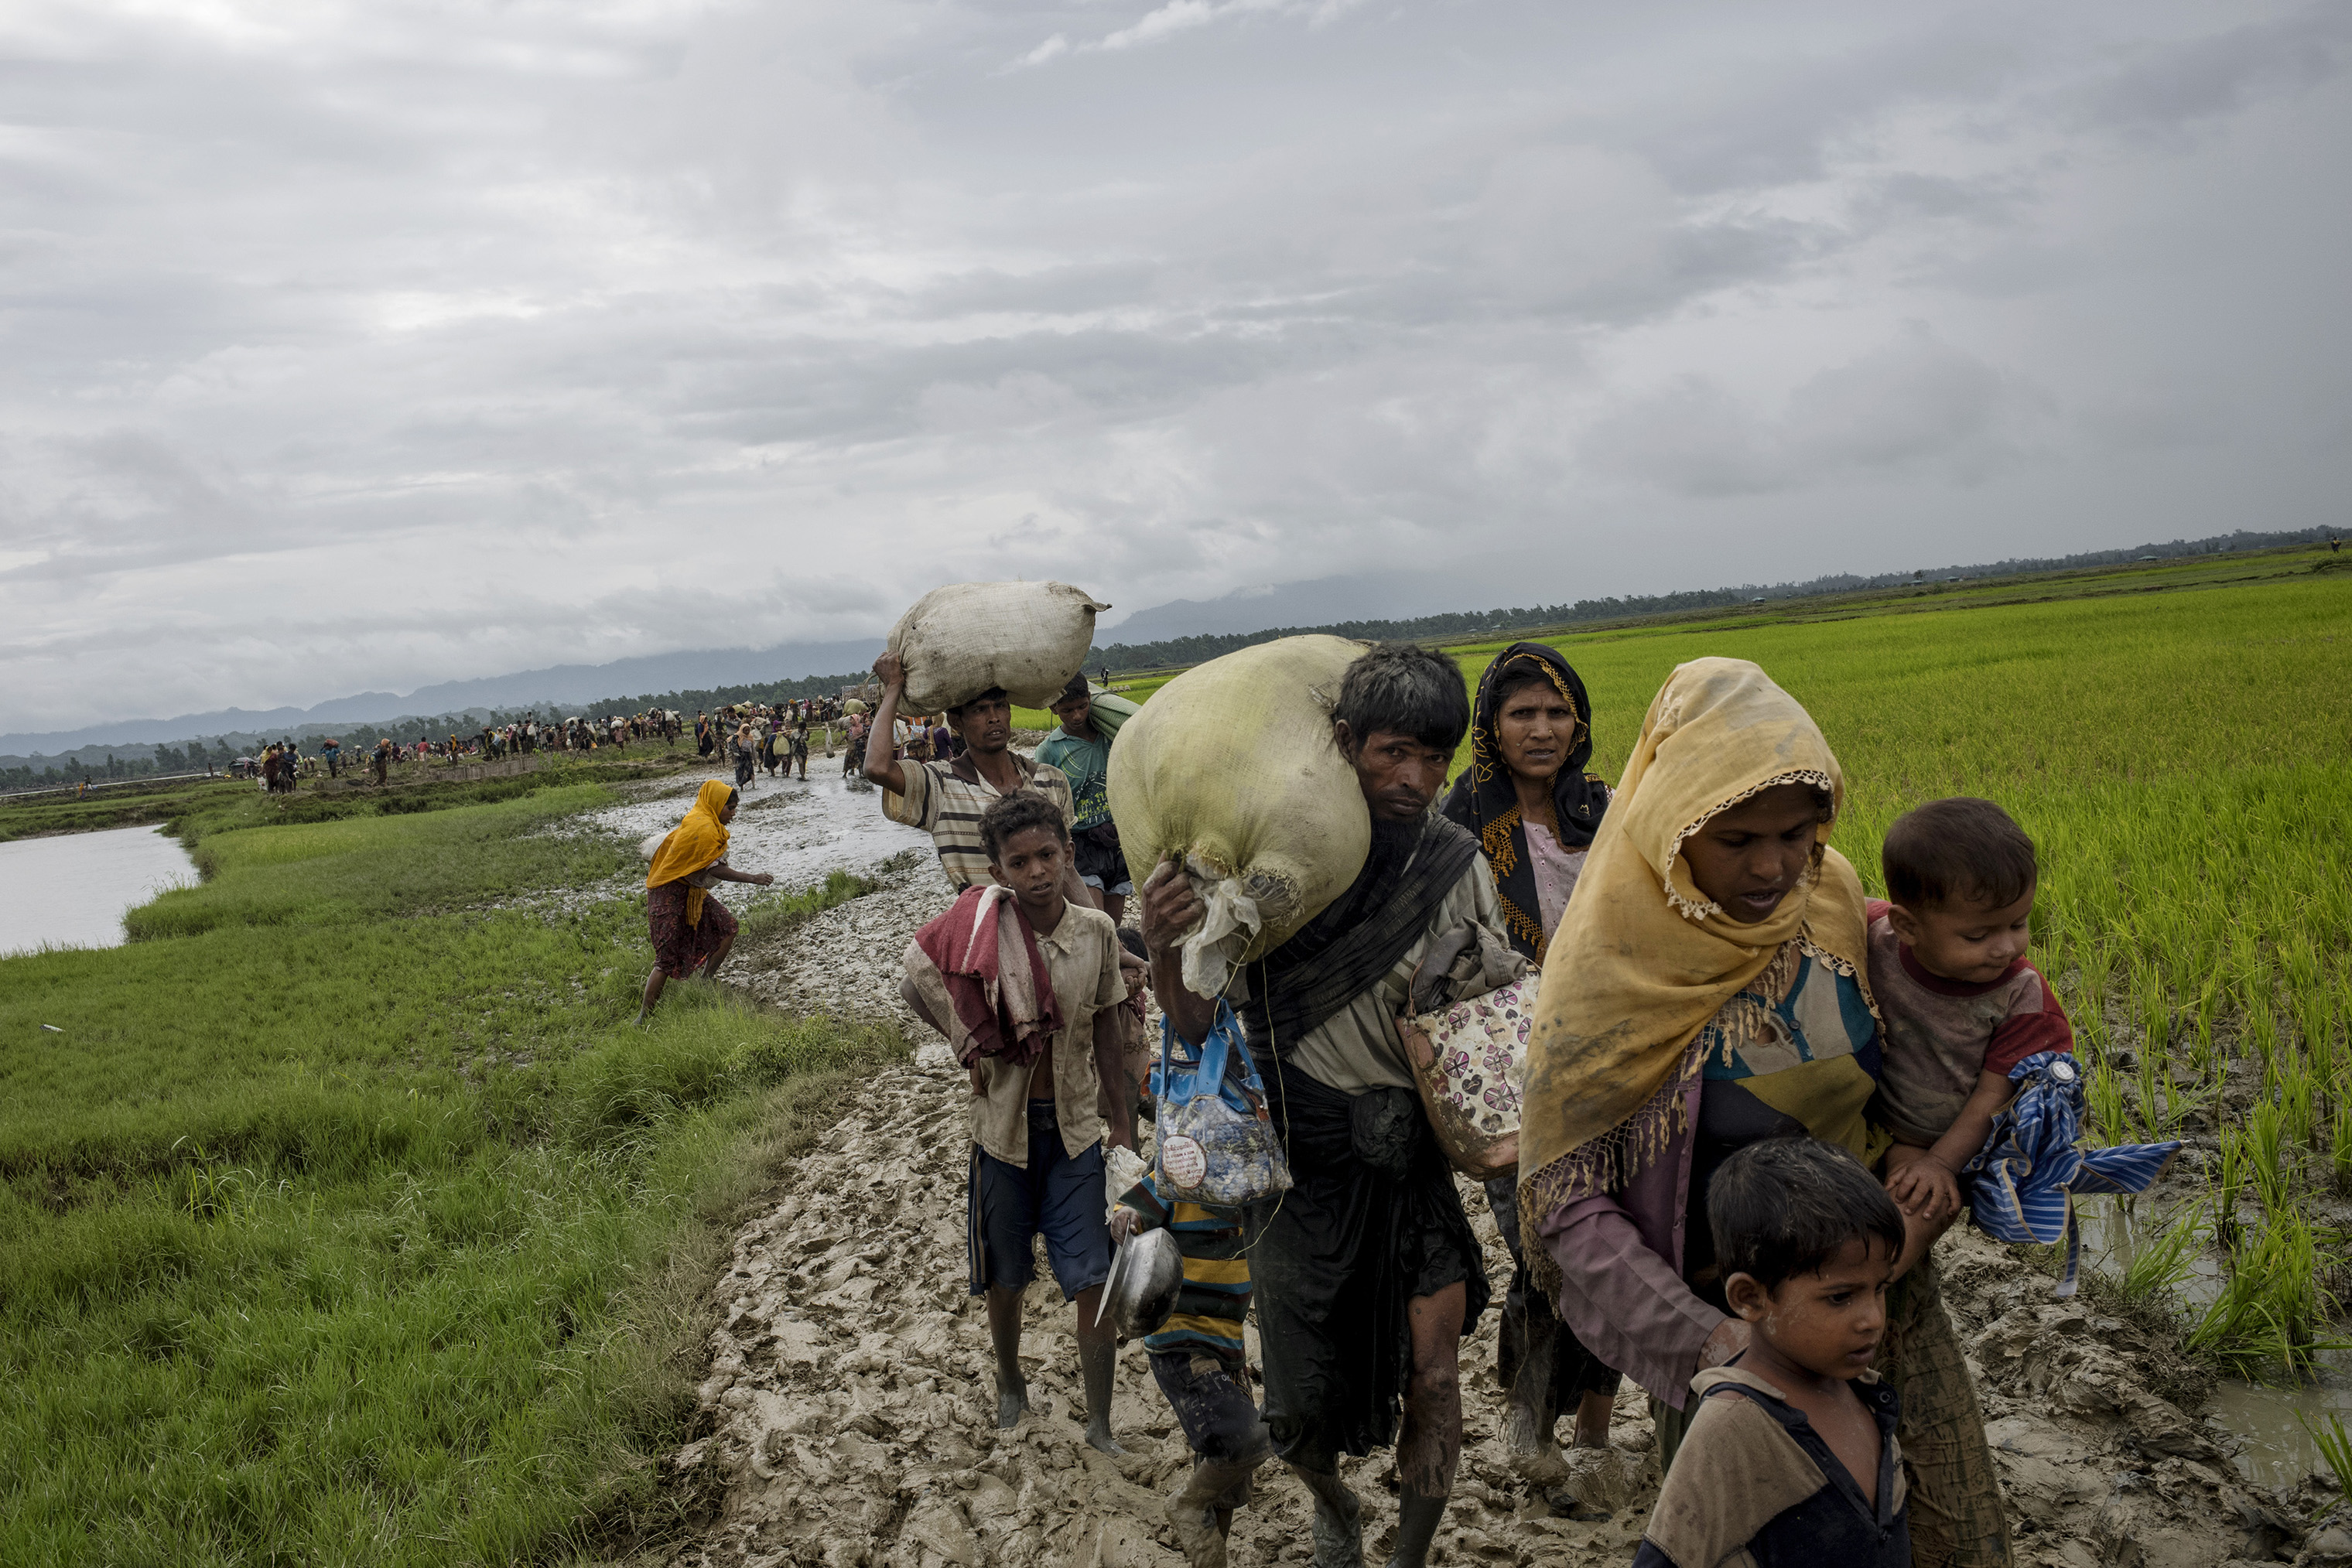 Members of Myanmar's Rohingya ethnic minority walk through paddy fields and flooded land after crossing the border into Bangladesh, August 31, 2017.